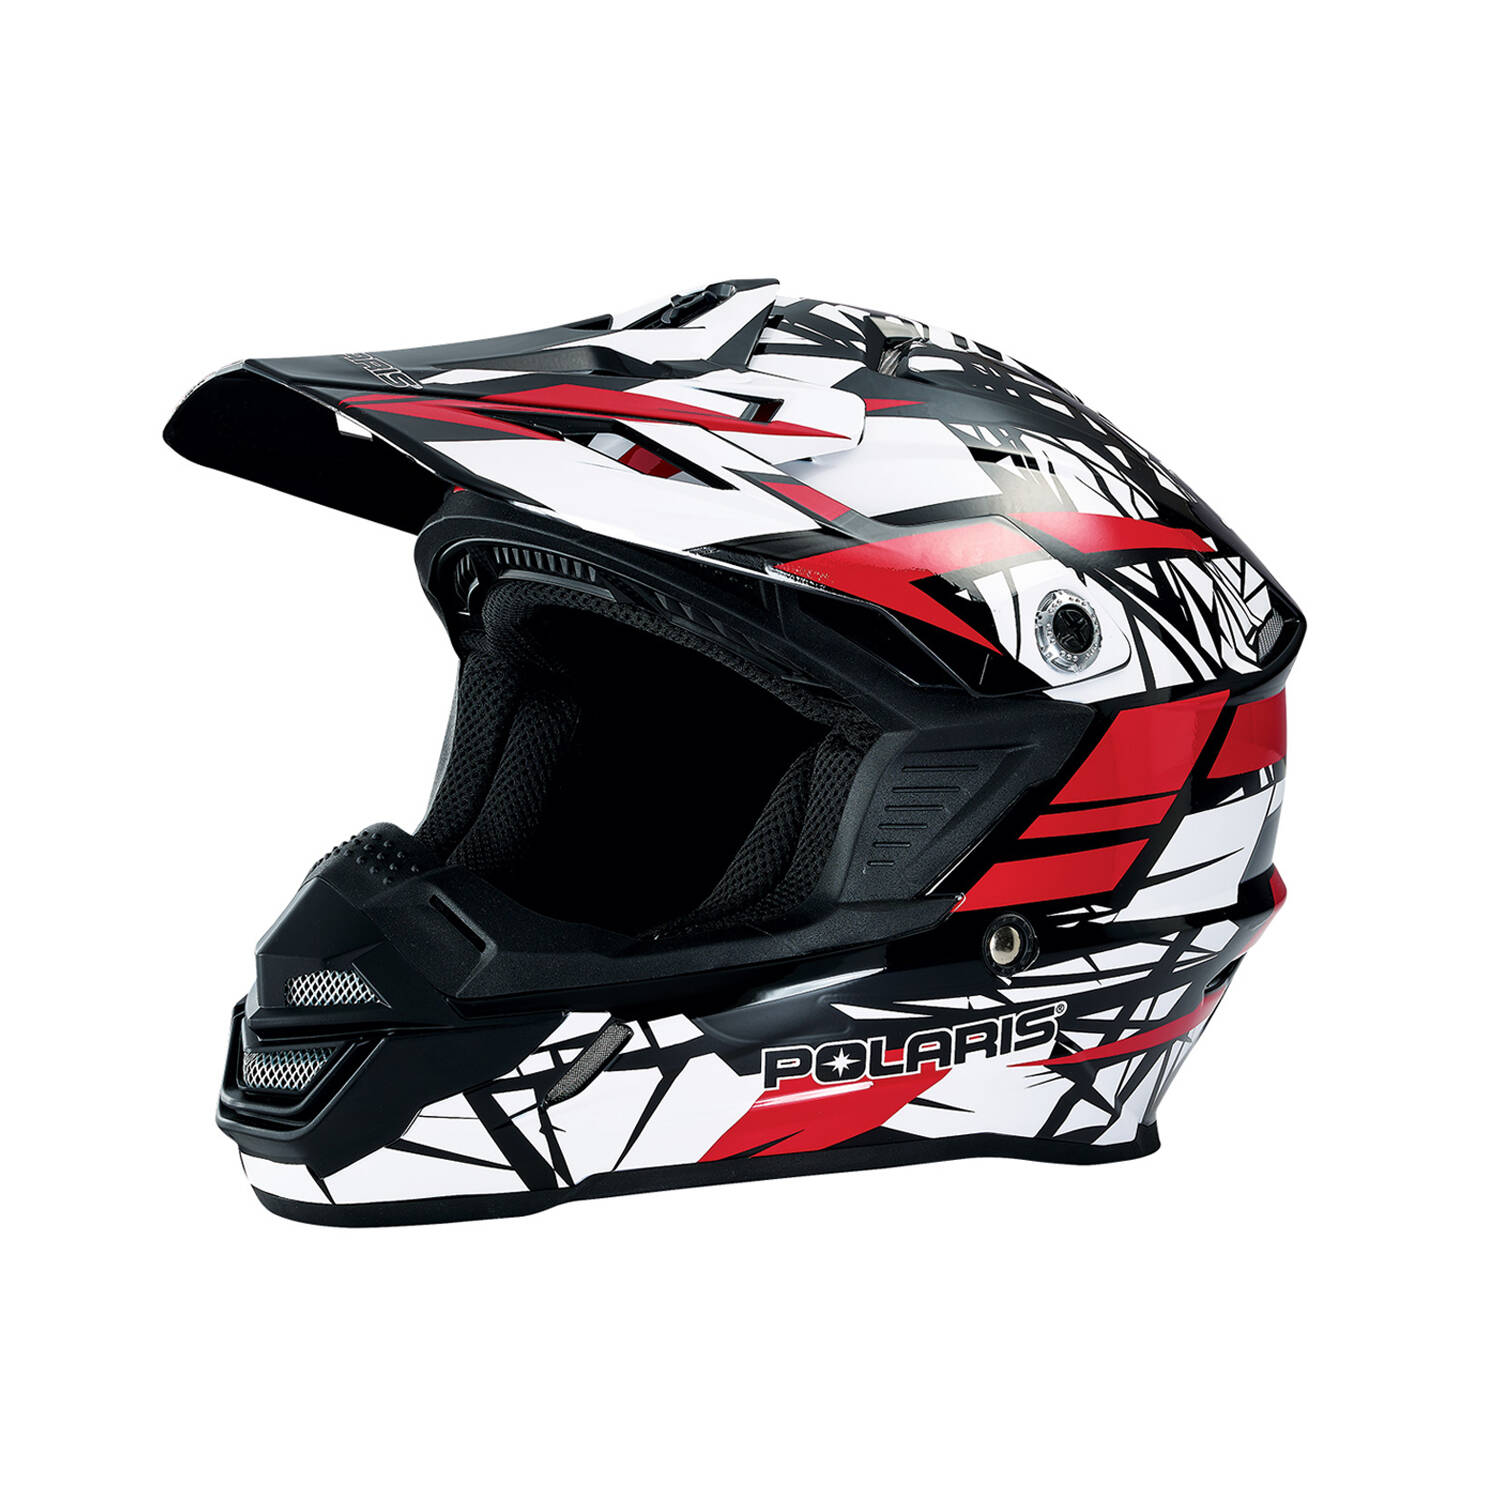 Tenacity Youth Moto Helmet with Removable Liner, Red